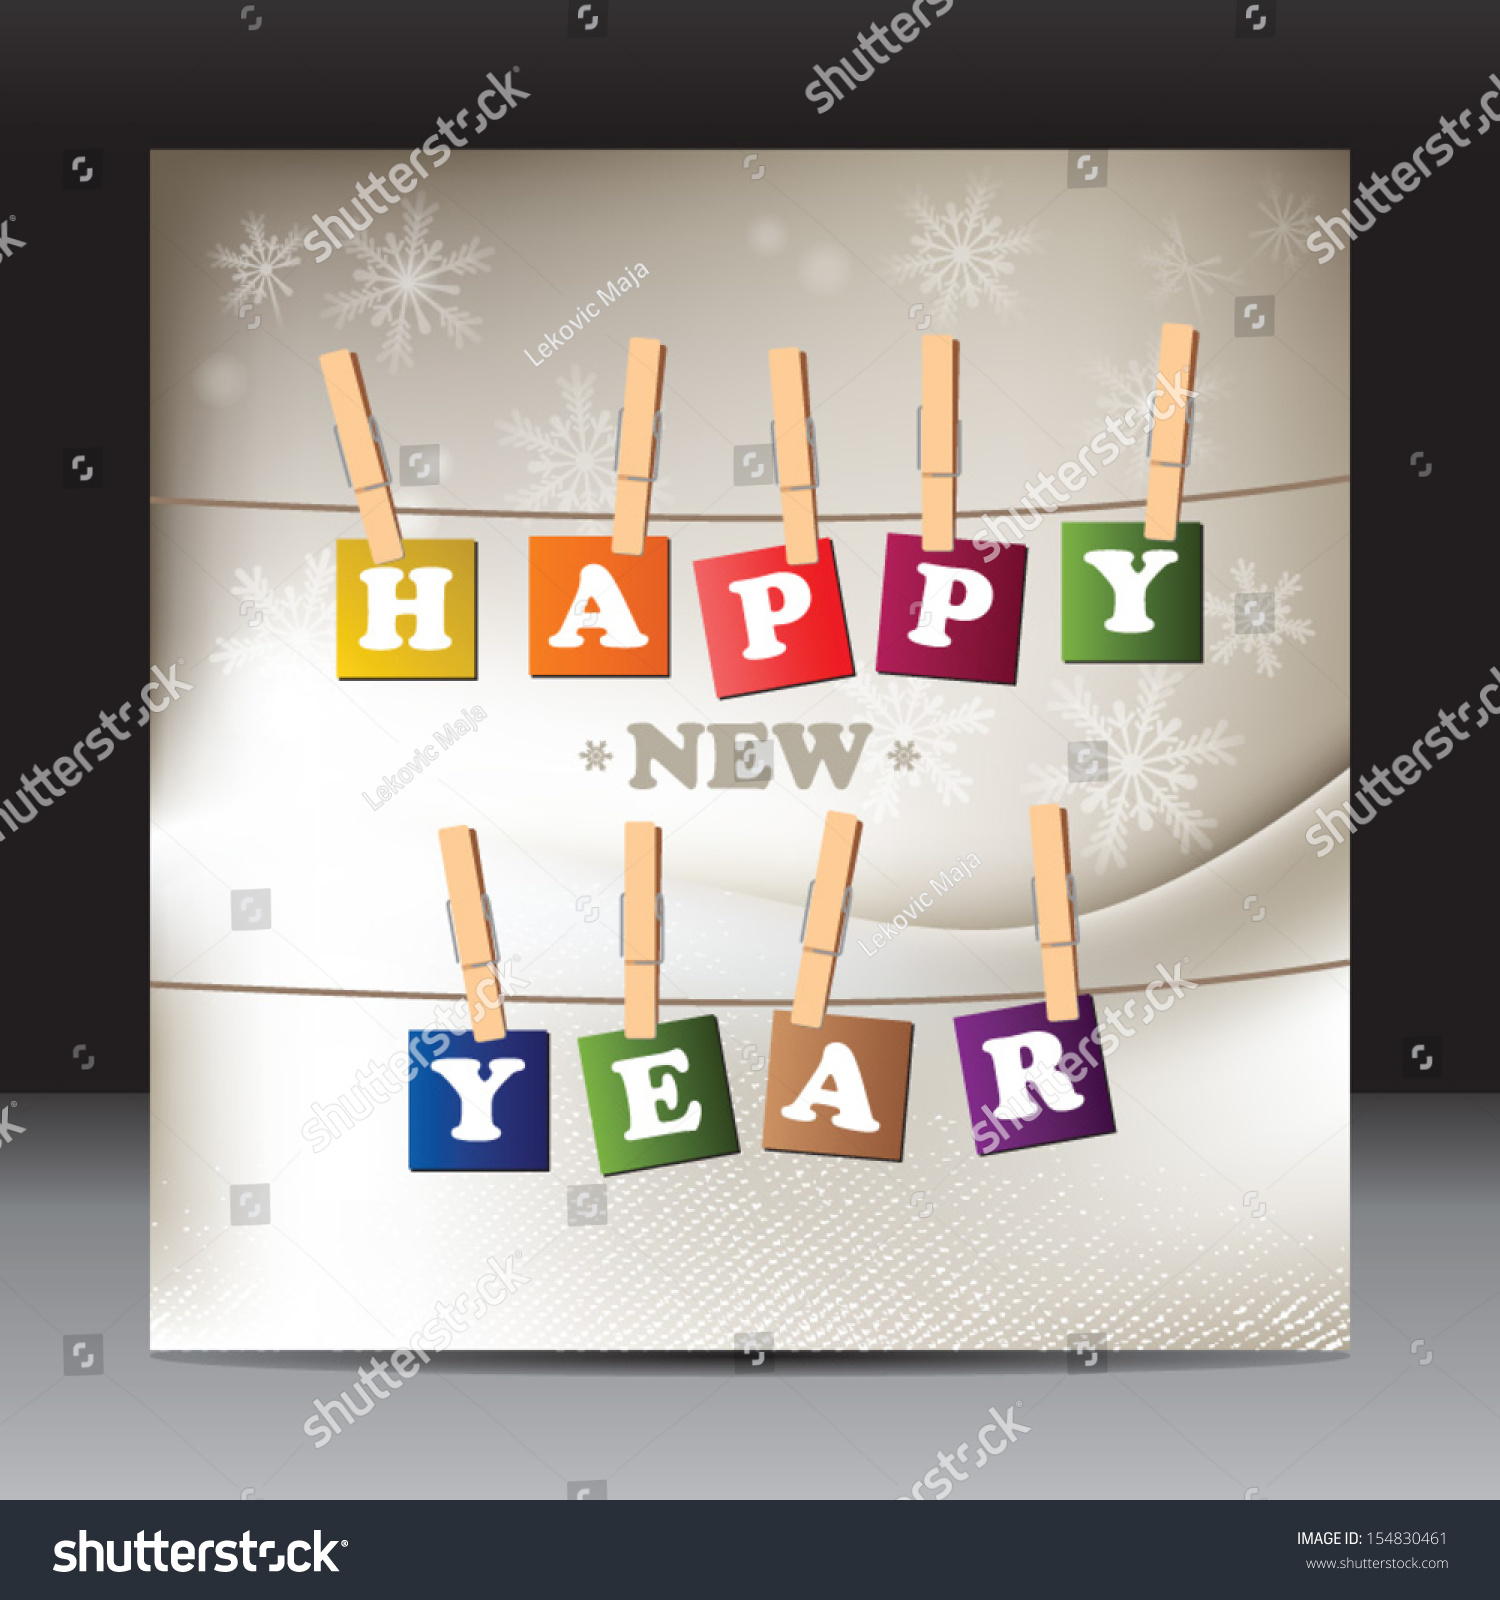 Happy New Year Flyer Design Template Stock Vector (Royalty Free ...